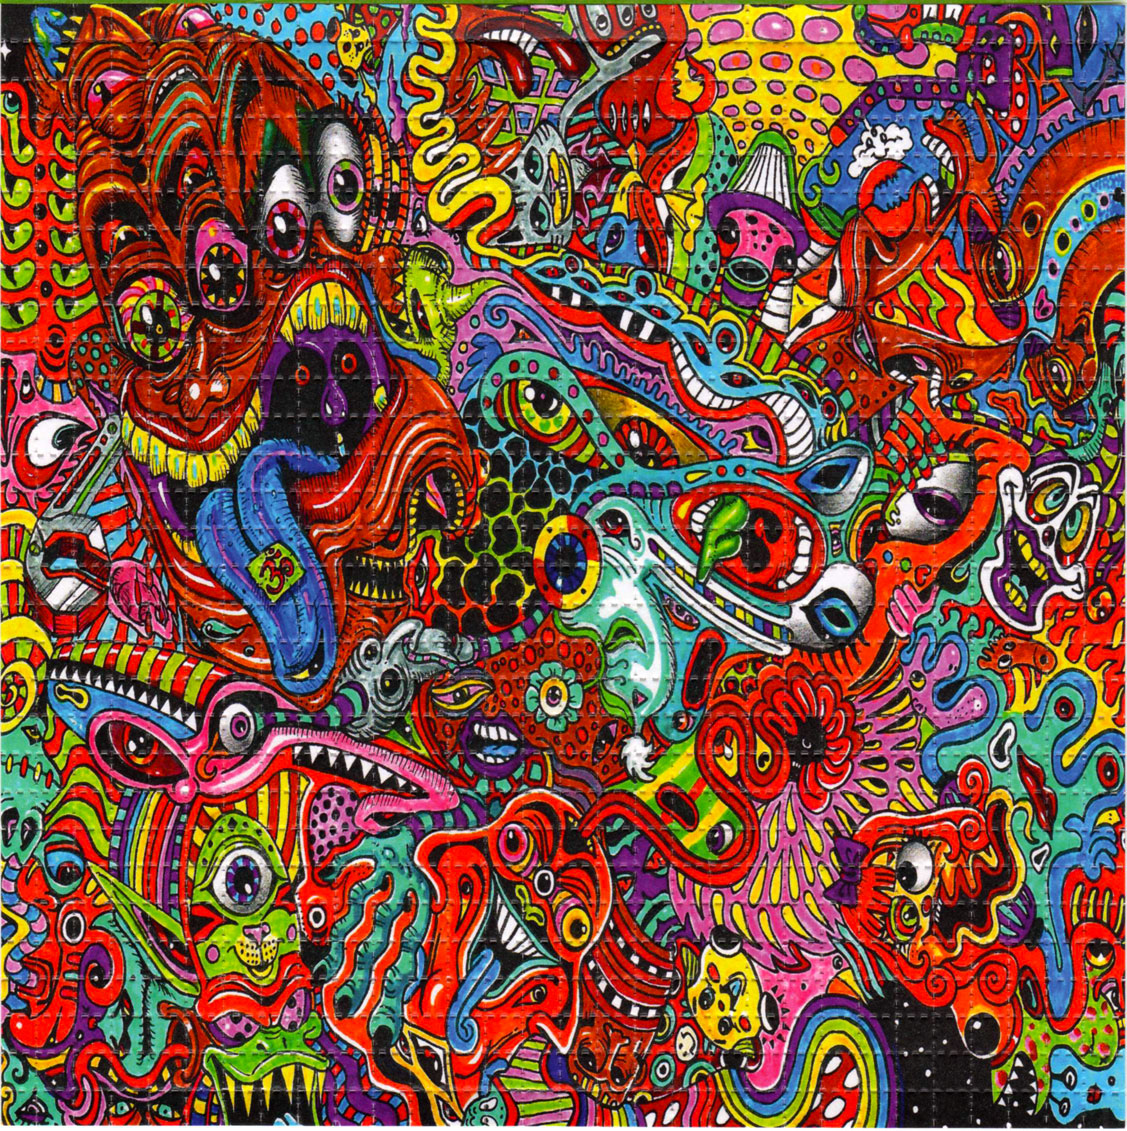 Wowza blotter art psychedelic perforated lsd acid art hofmann ebay - Trippy acid pics ...